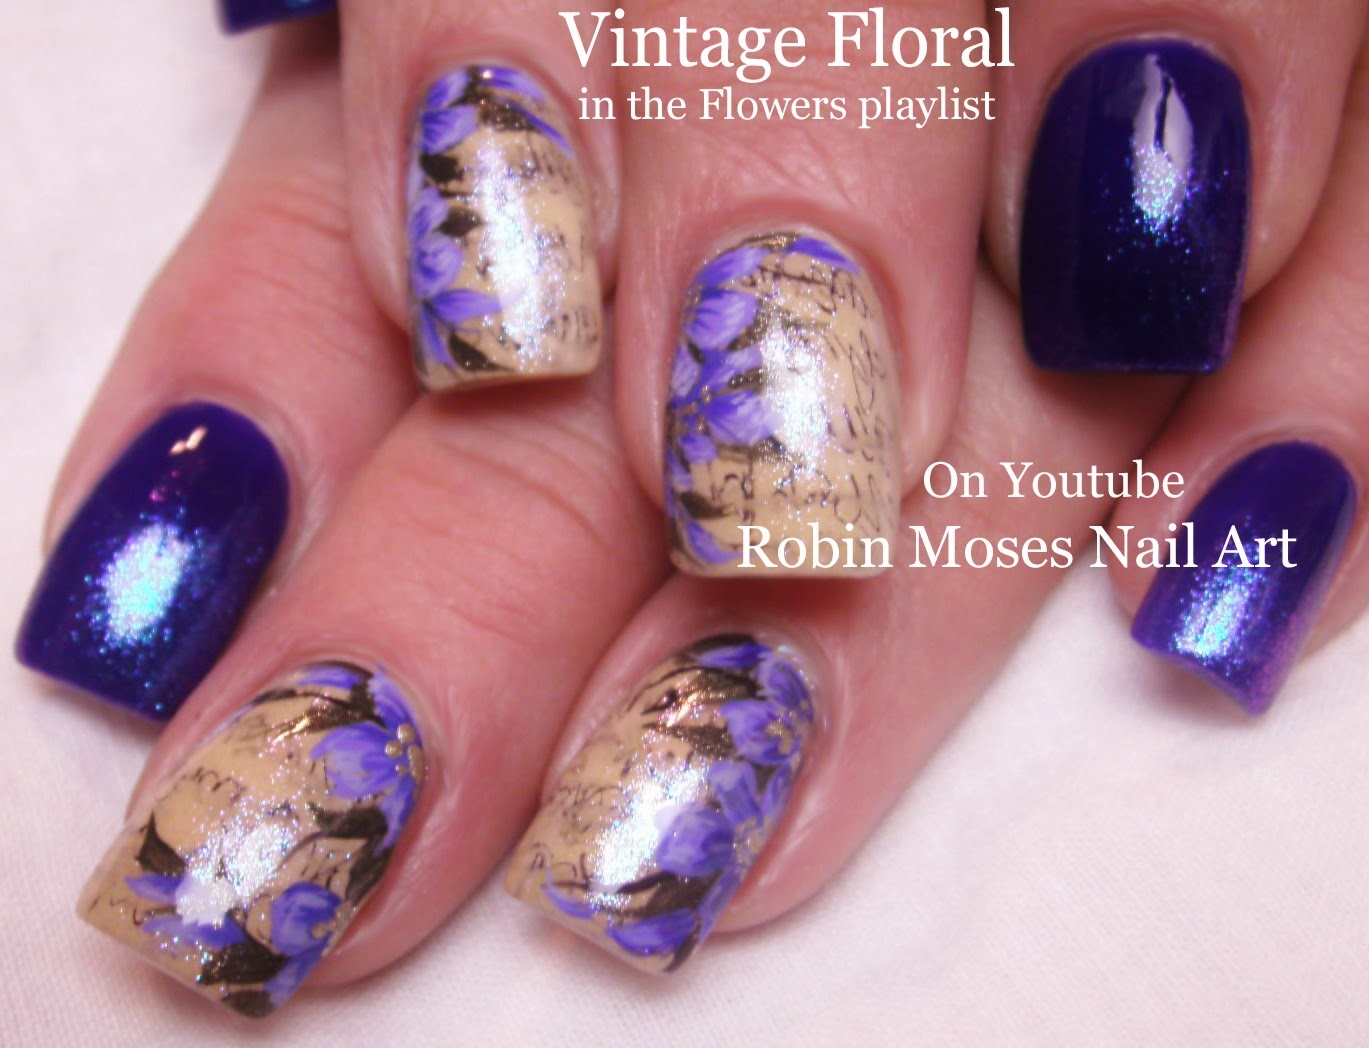 Robin moses nail art sharpie pens used for lavender vintage sharpie pens used for lavender vintage flower nail art design for beginners tutorial up today prinsesfo Choice Image